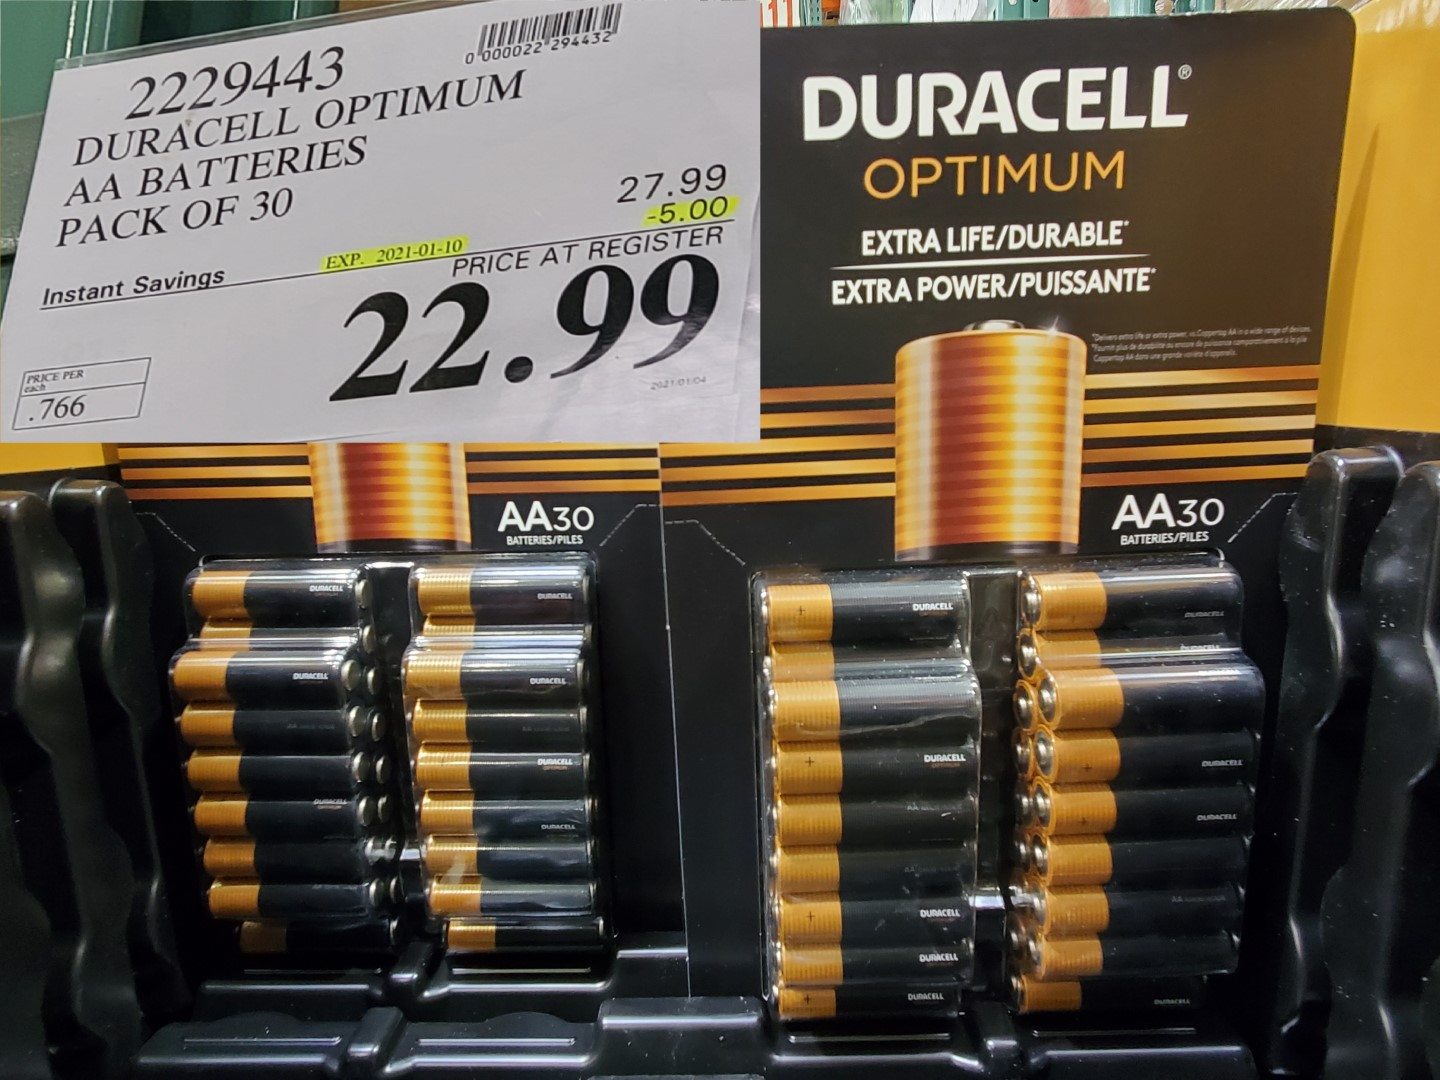 Saleduracell optimum